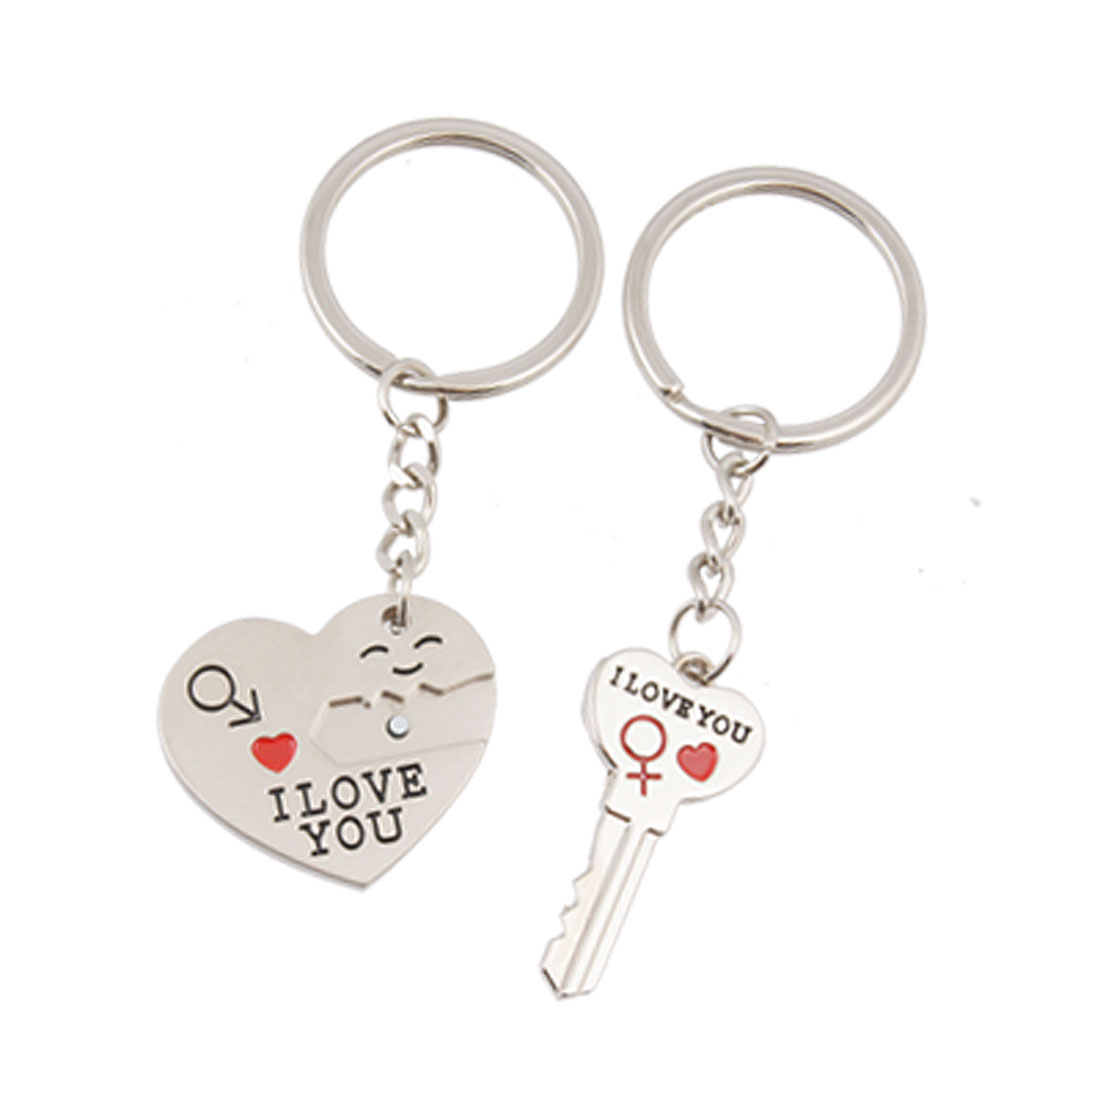 I LOVE YOU Heart Key w Lock Pendant Metal Keyring Keychain for Lovers